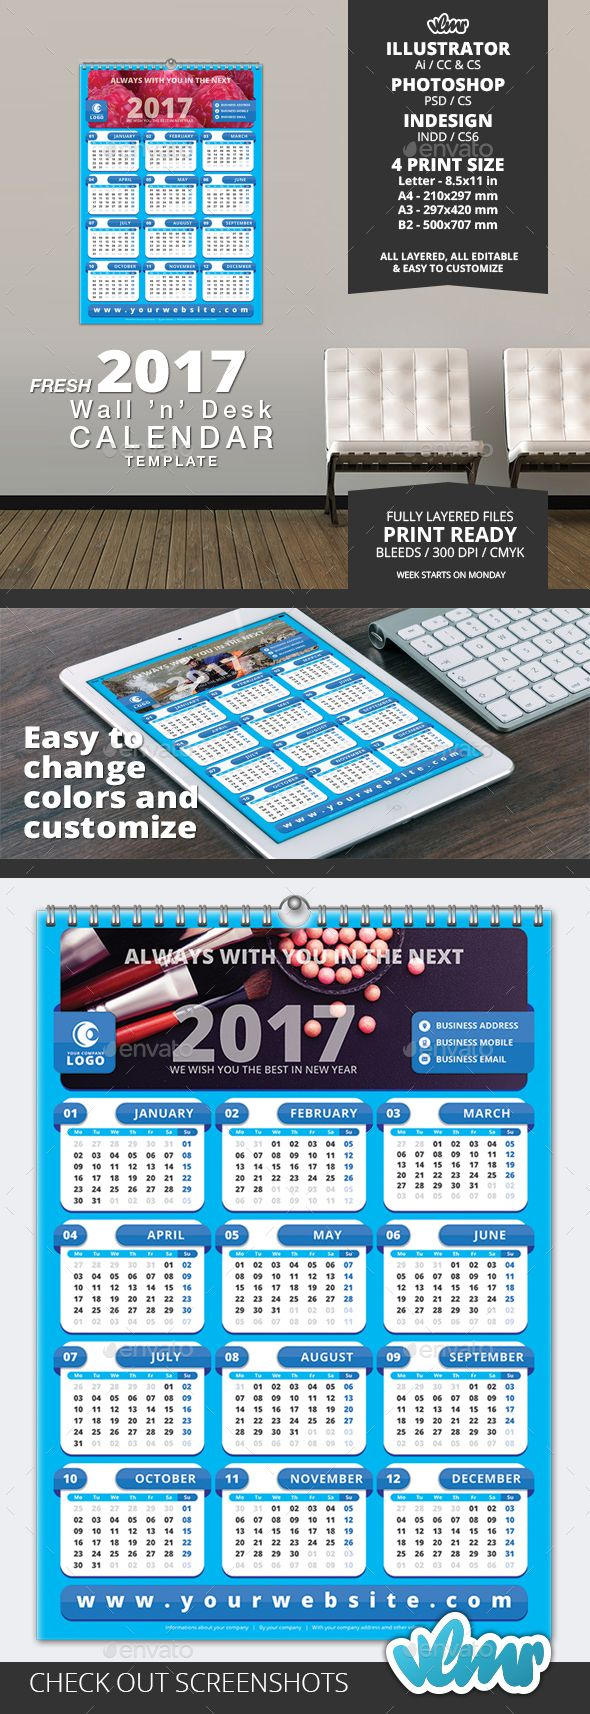 New FRESH Wall N Desk Calendar Template Now Aveliable At Vlmr - Promo calendar template